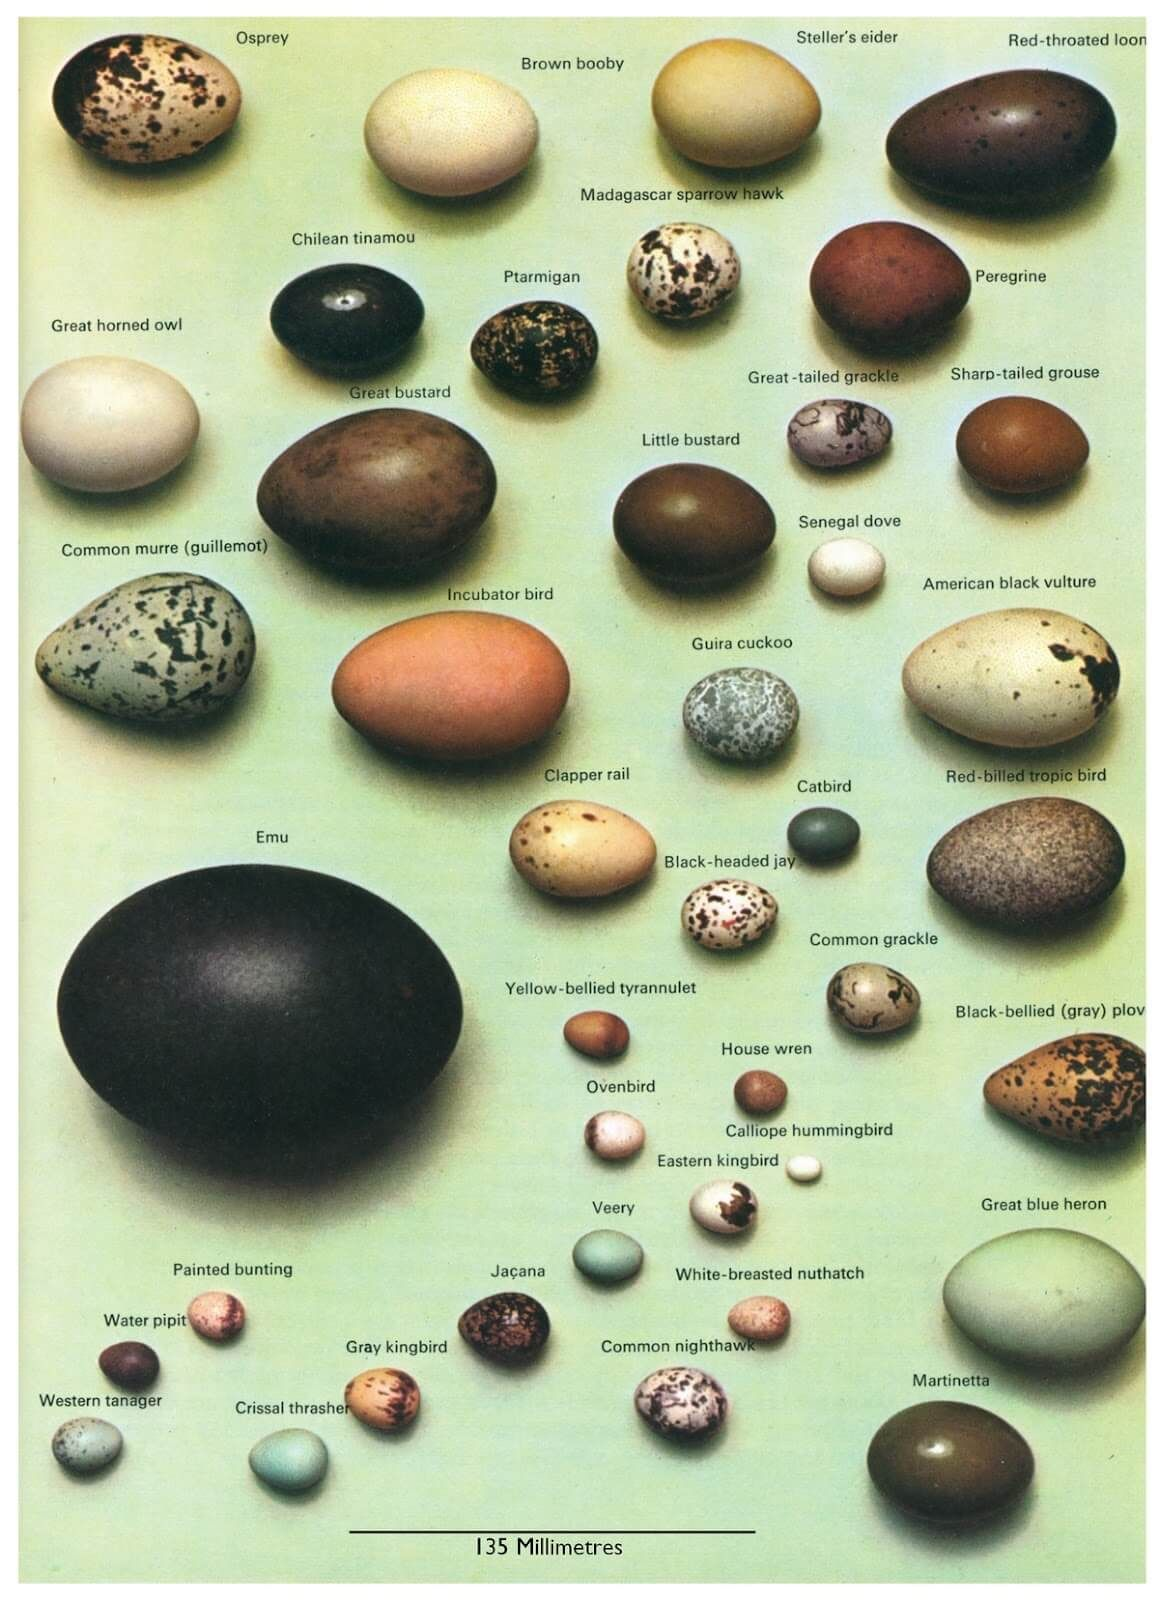 Pin By Jessica Lowery On Ornithology Pinterest Birds Eggs And